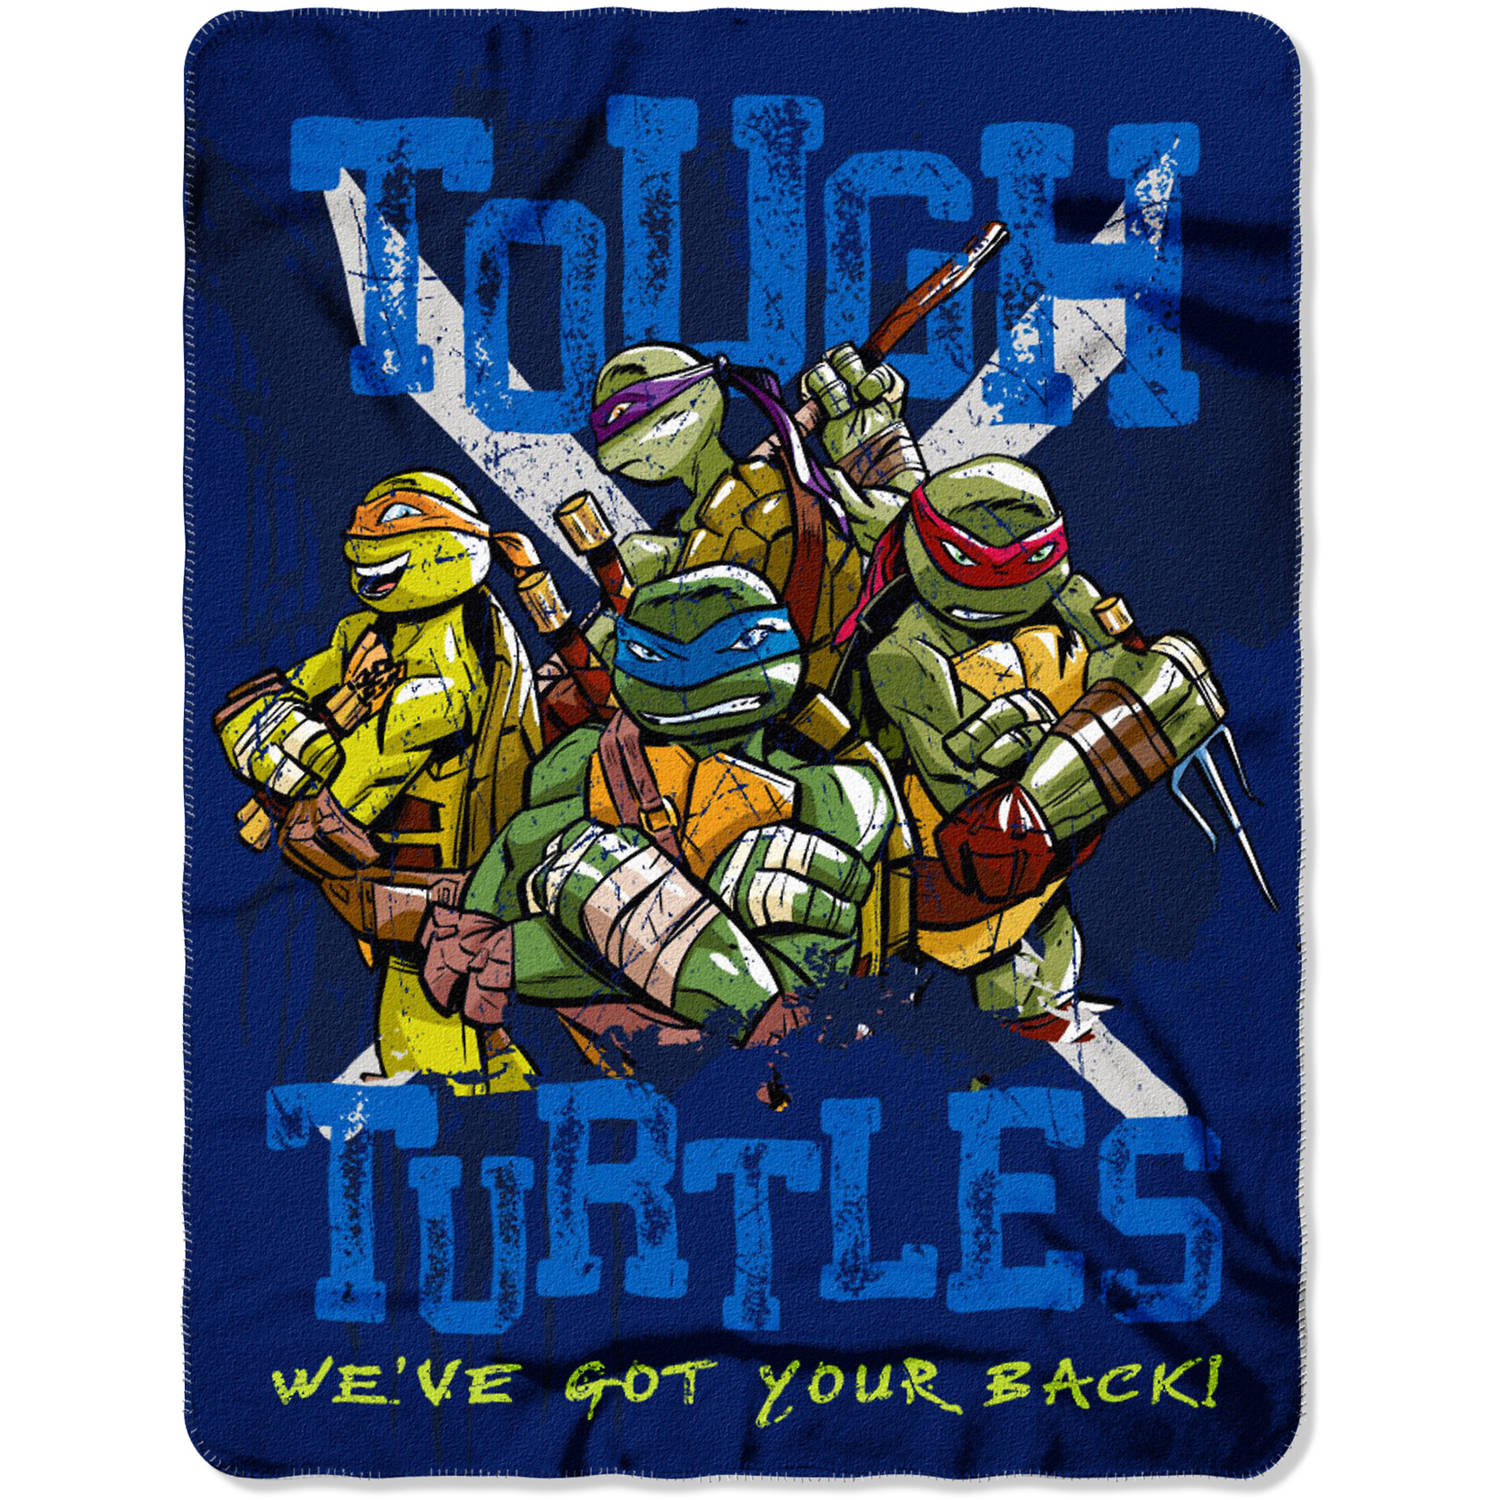 "Nickelodeon's Teenage Mutant Ninja Turtles ""Tough Turtle Blues"" 45"" x 60"" Fleece Throw"